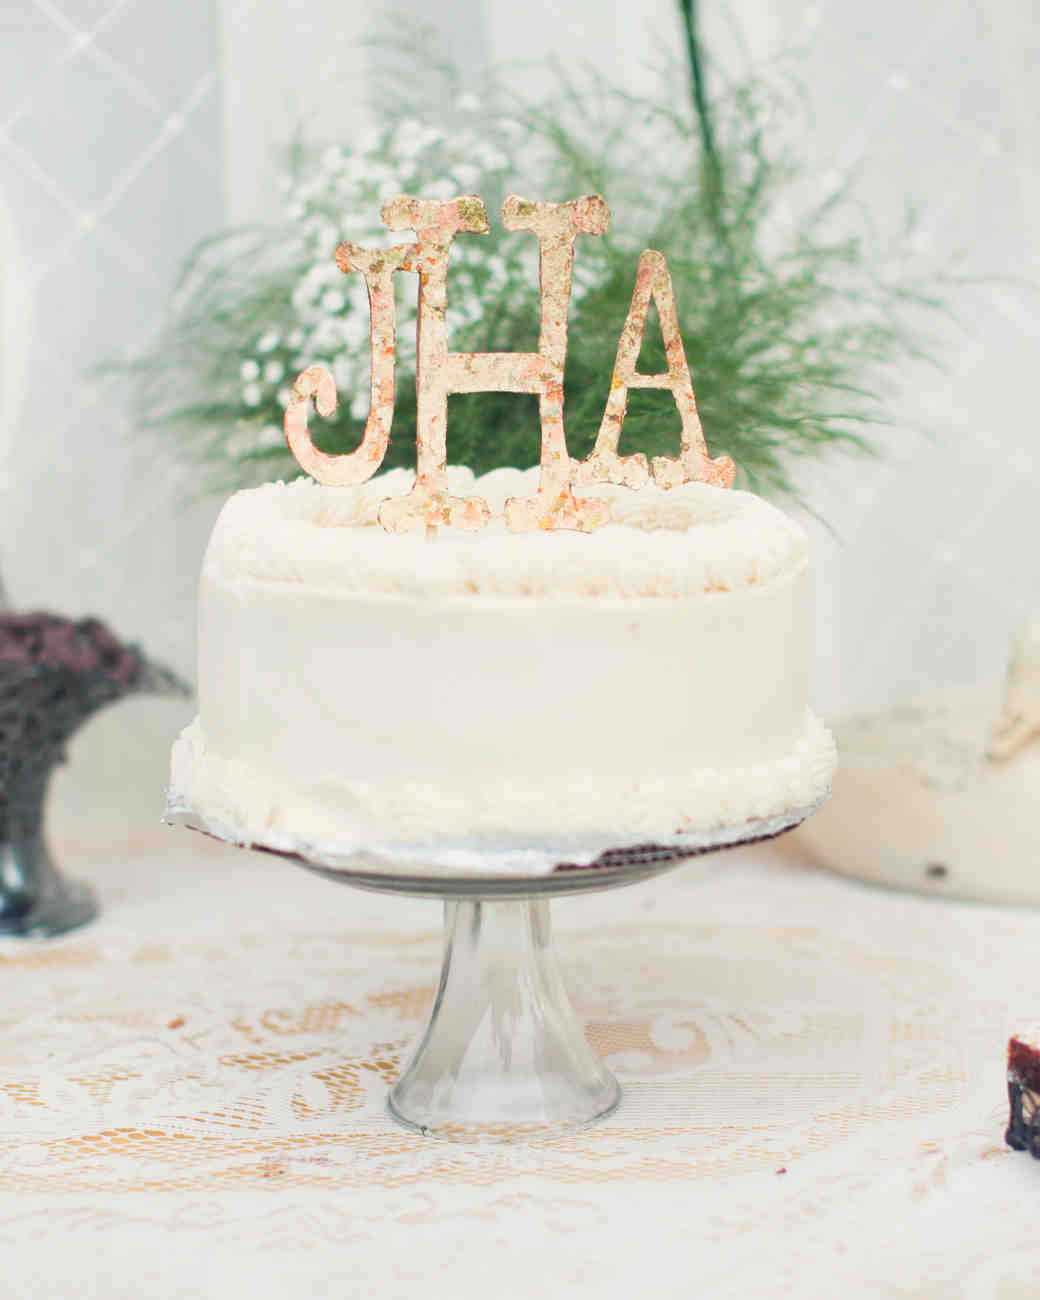 Single Tiered White Wedding Cake With Floral Monogram Topper